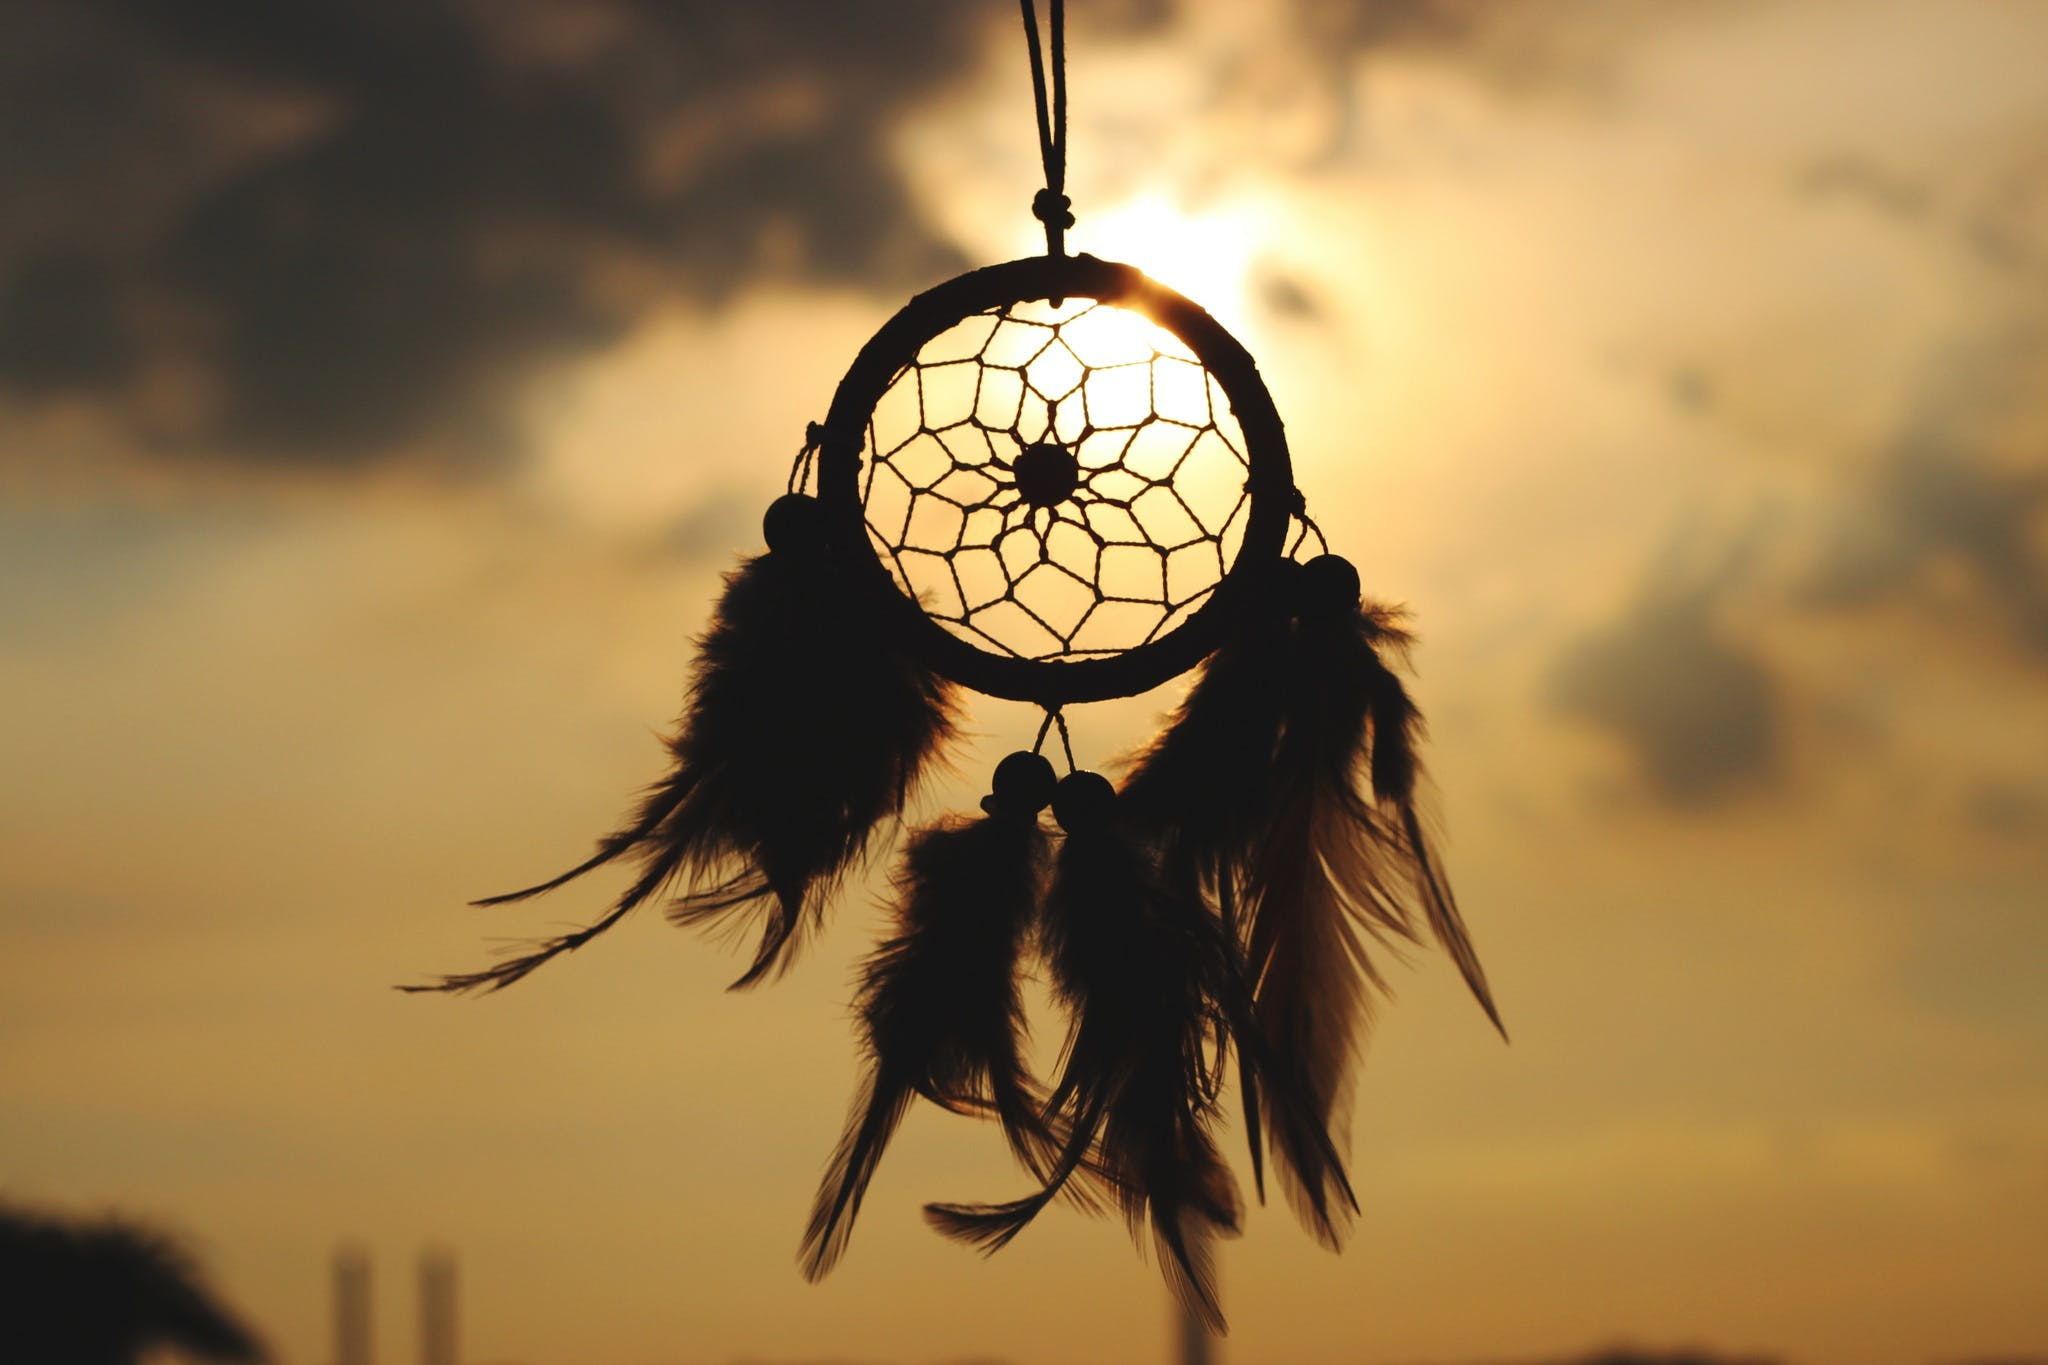 Silhouette of Feather Dreamcatcher